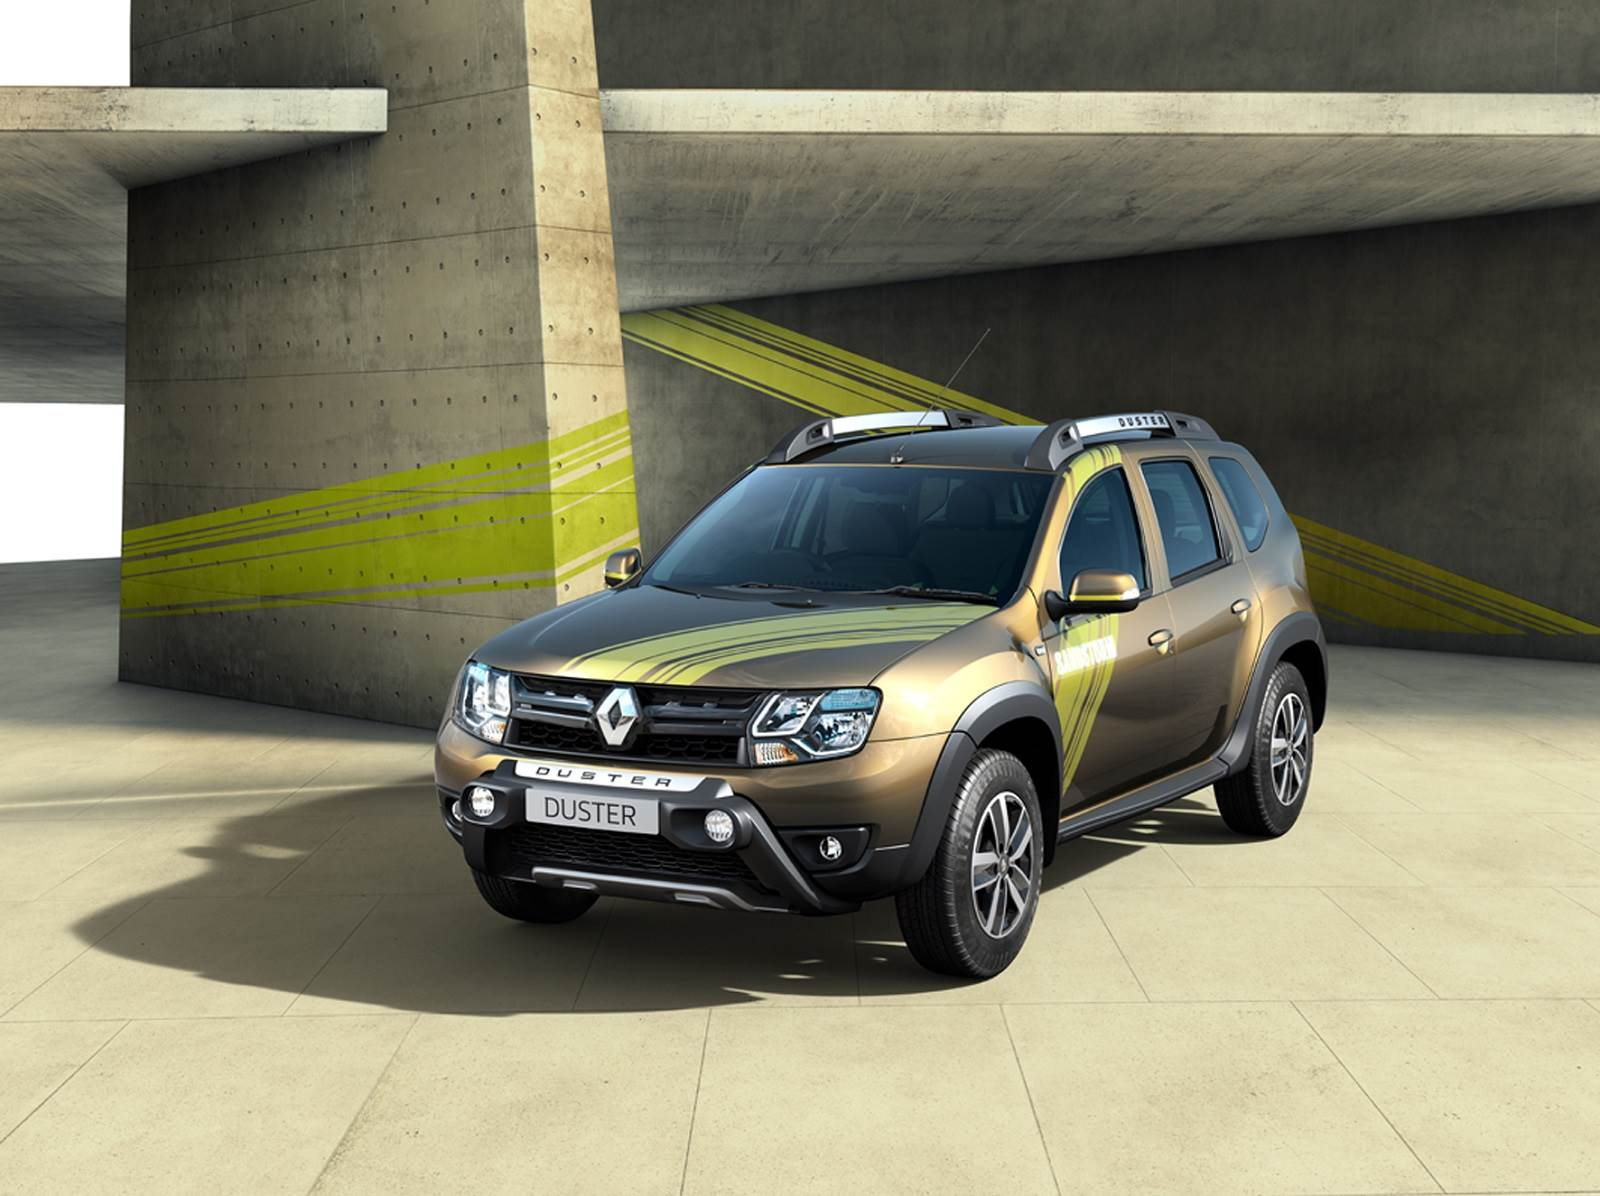 2017 Renault Duster Sandstorm edition launched at Rs 10.4...